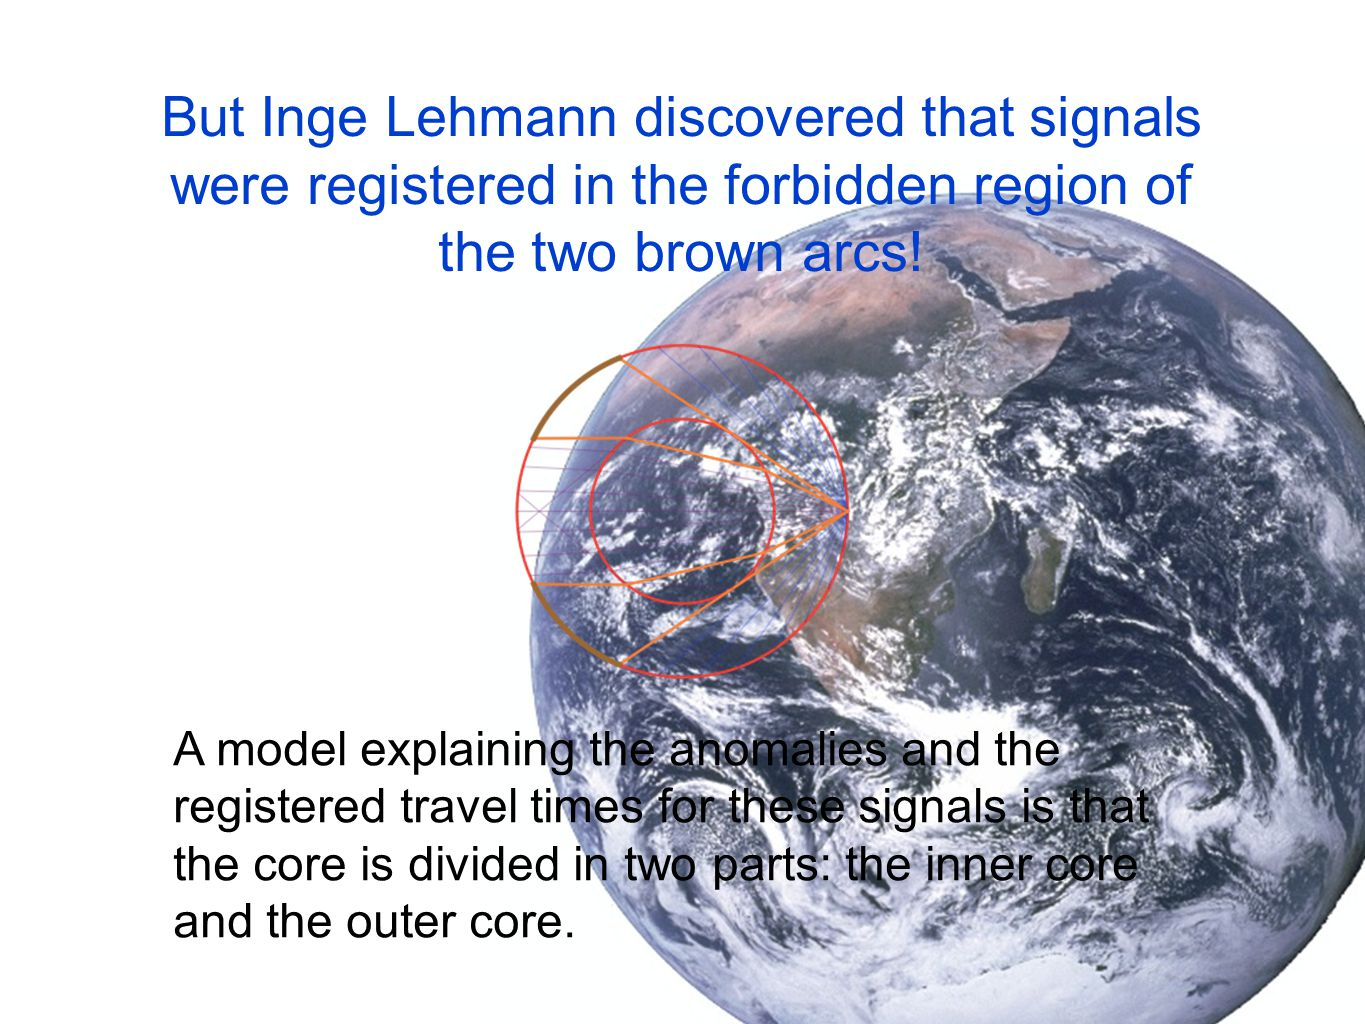 But Inge Lehmann discovered that signals were registered in the forbidden region of the two brown arcs.